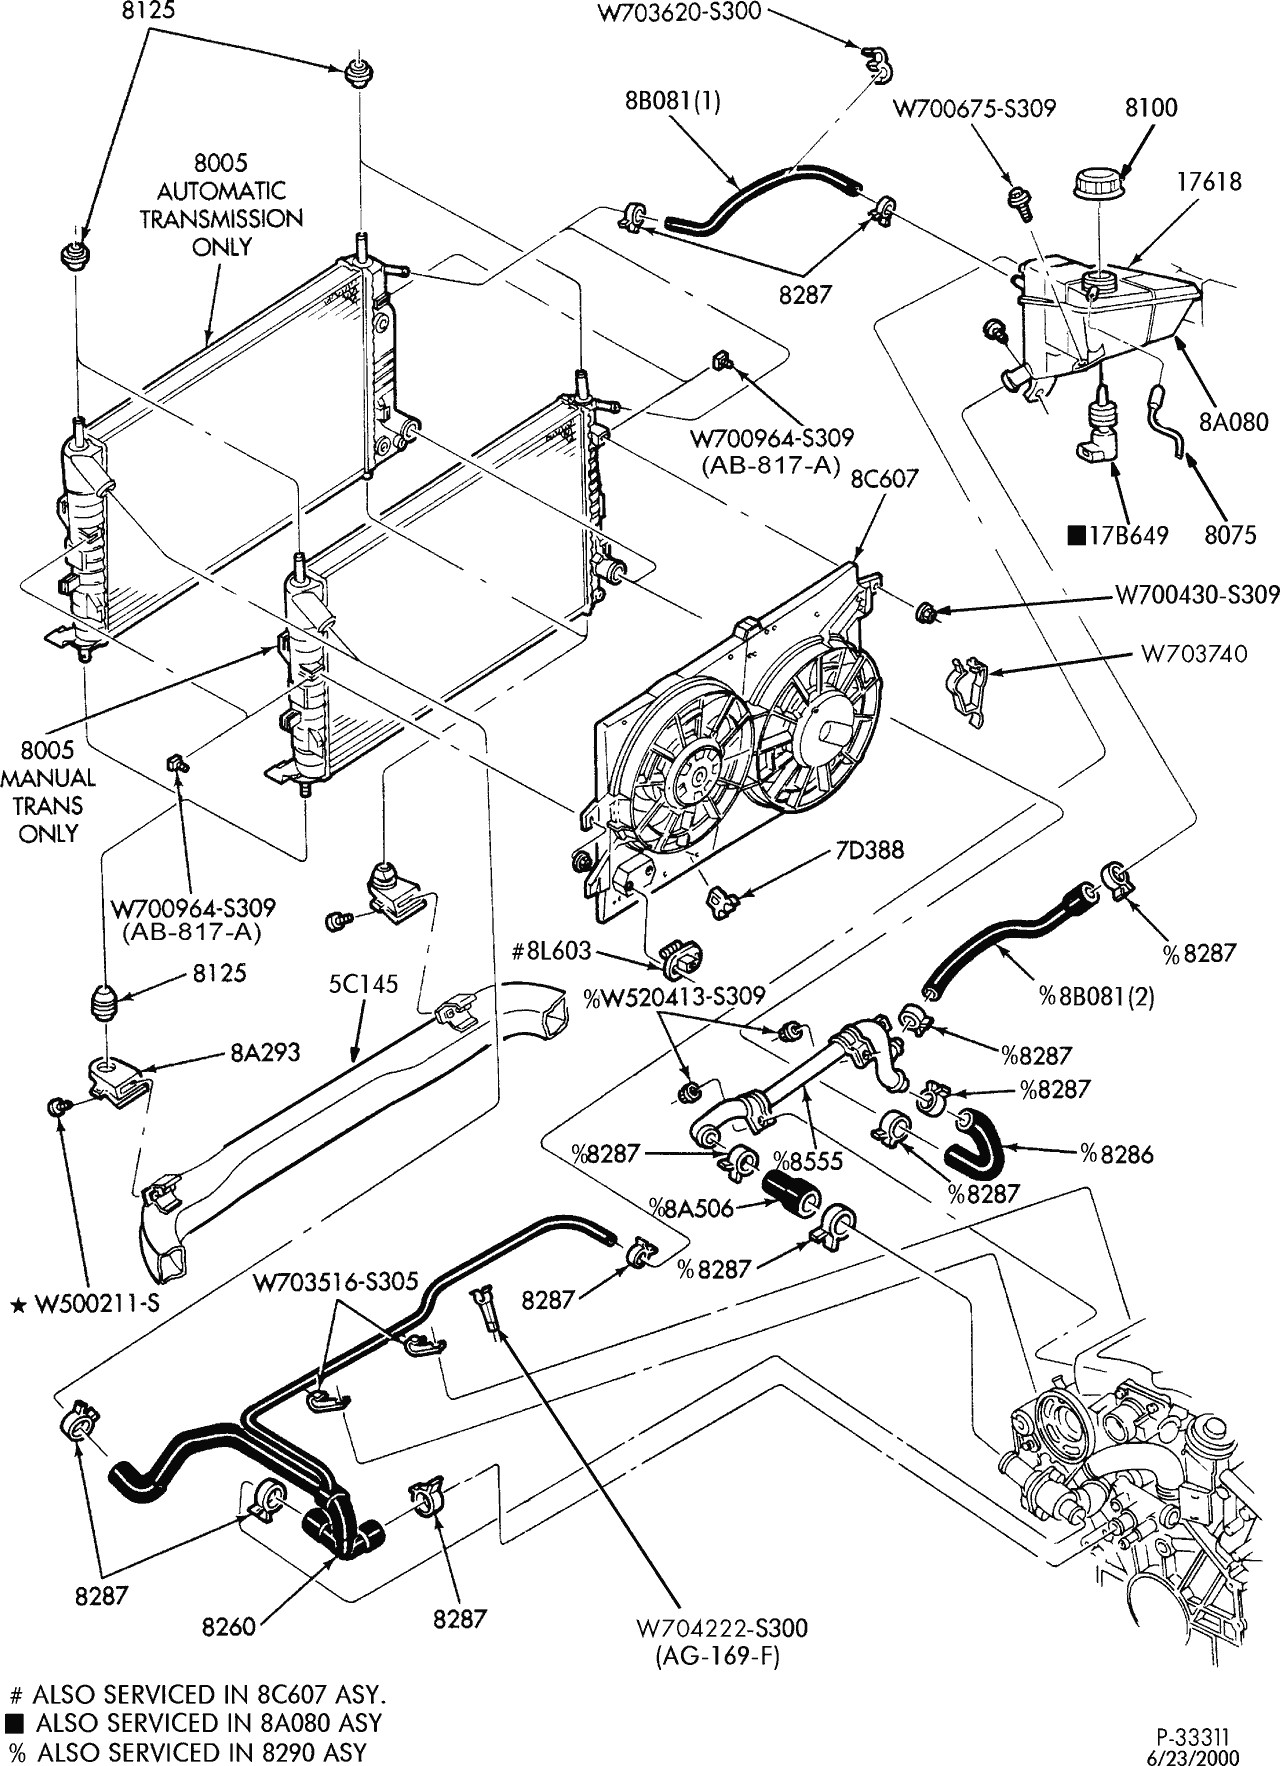 2000 Ford Windstar Fuse Box Diagram View Wiring Data Schema 99 Images Gallery